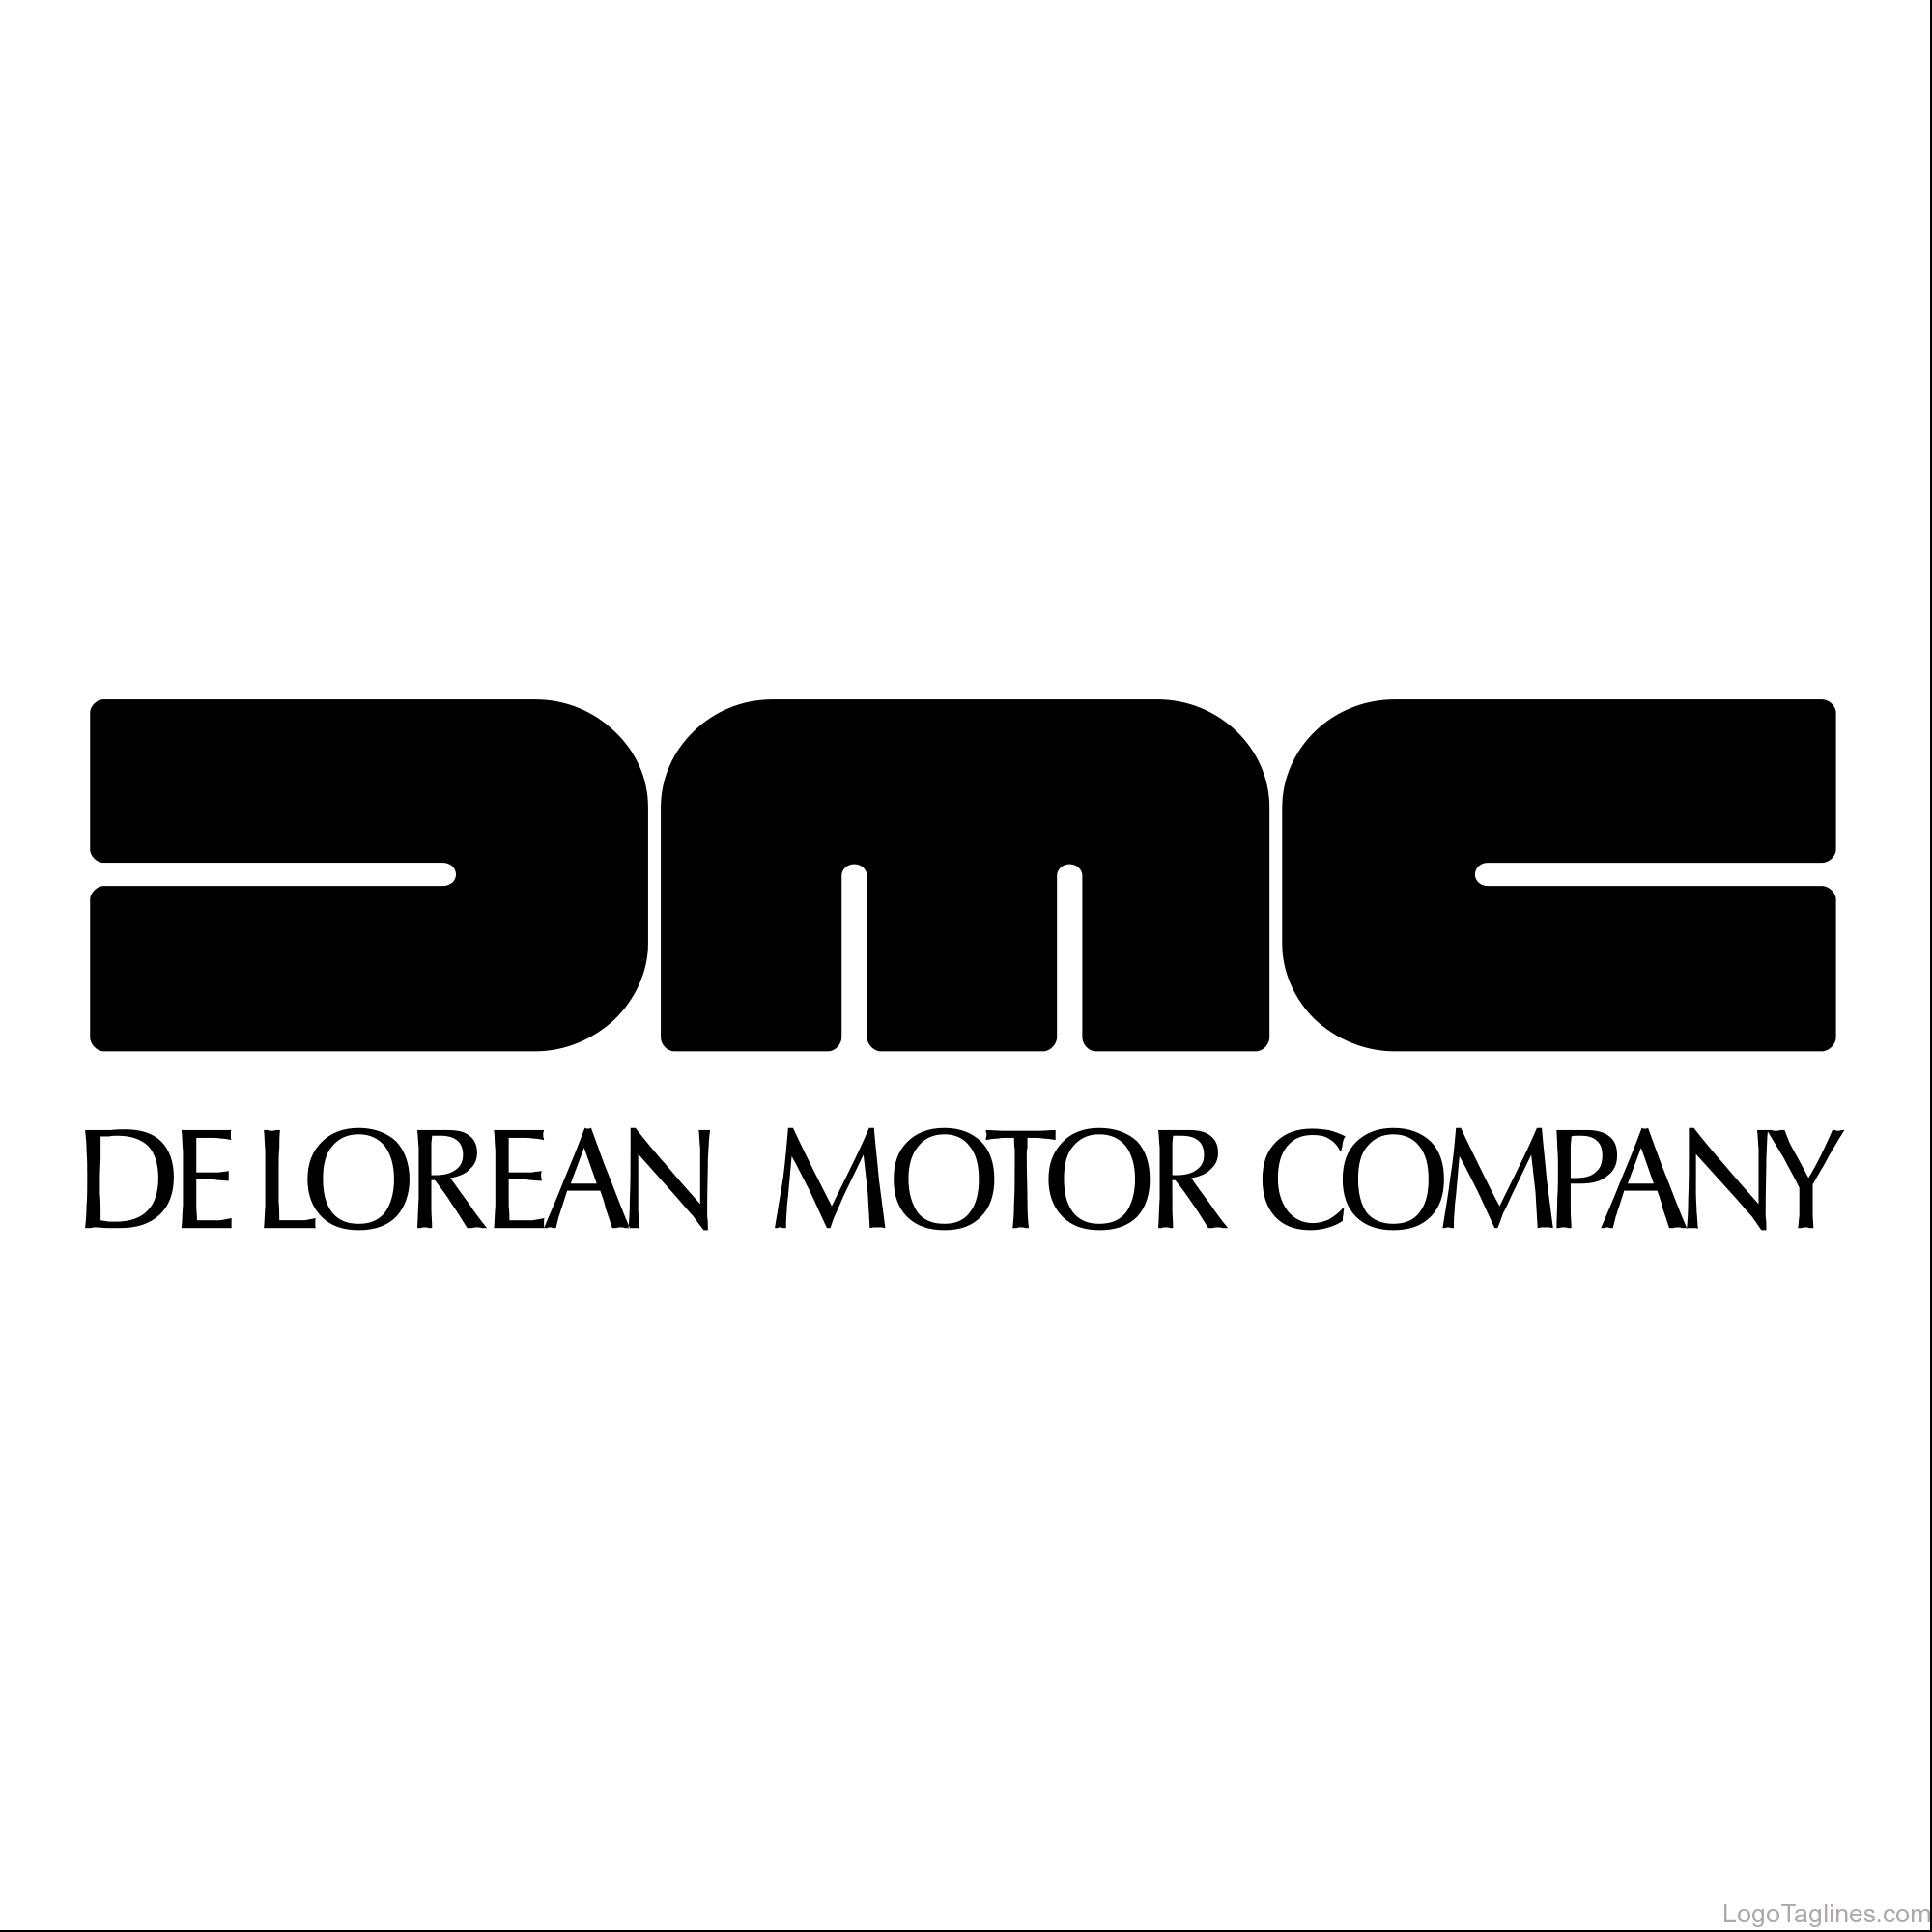 All Cars Logos And Names >> The DeLorean Motor Company- DMC Logo and Tagline